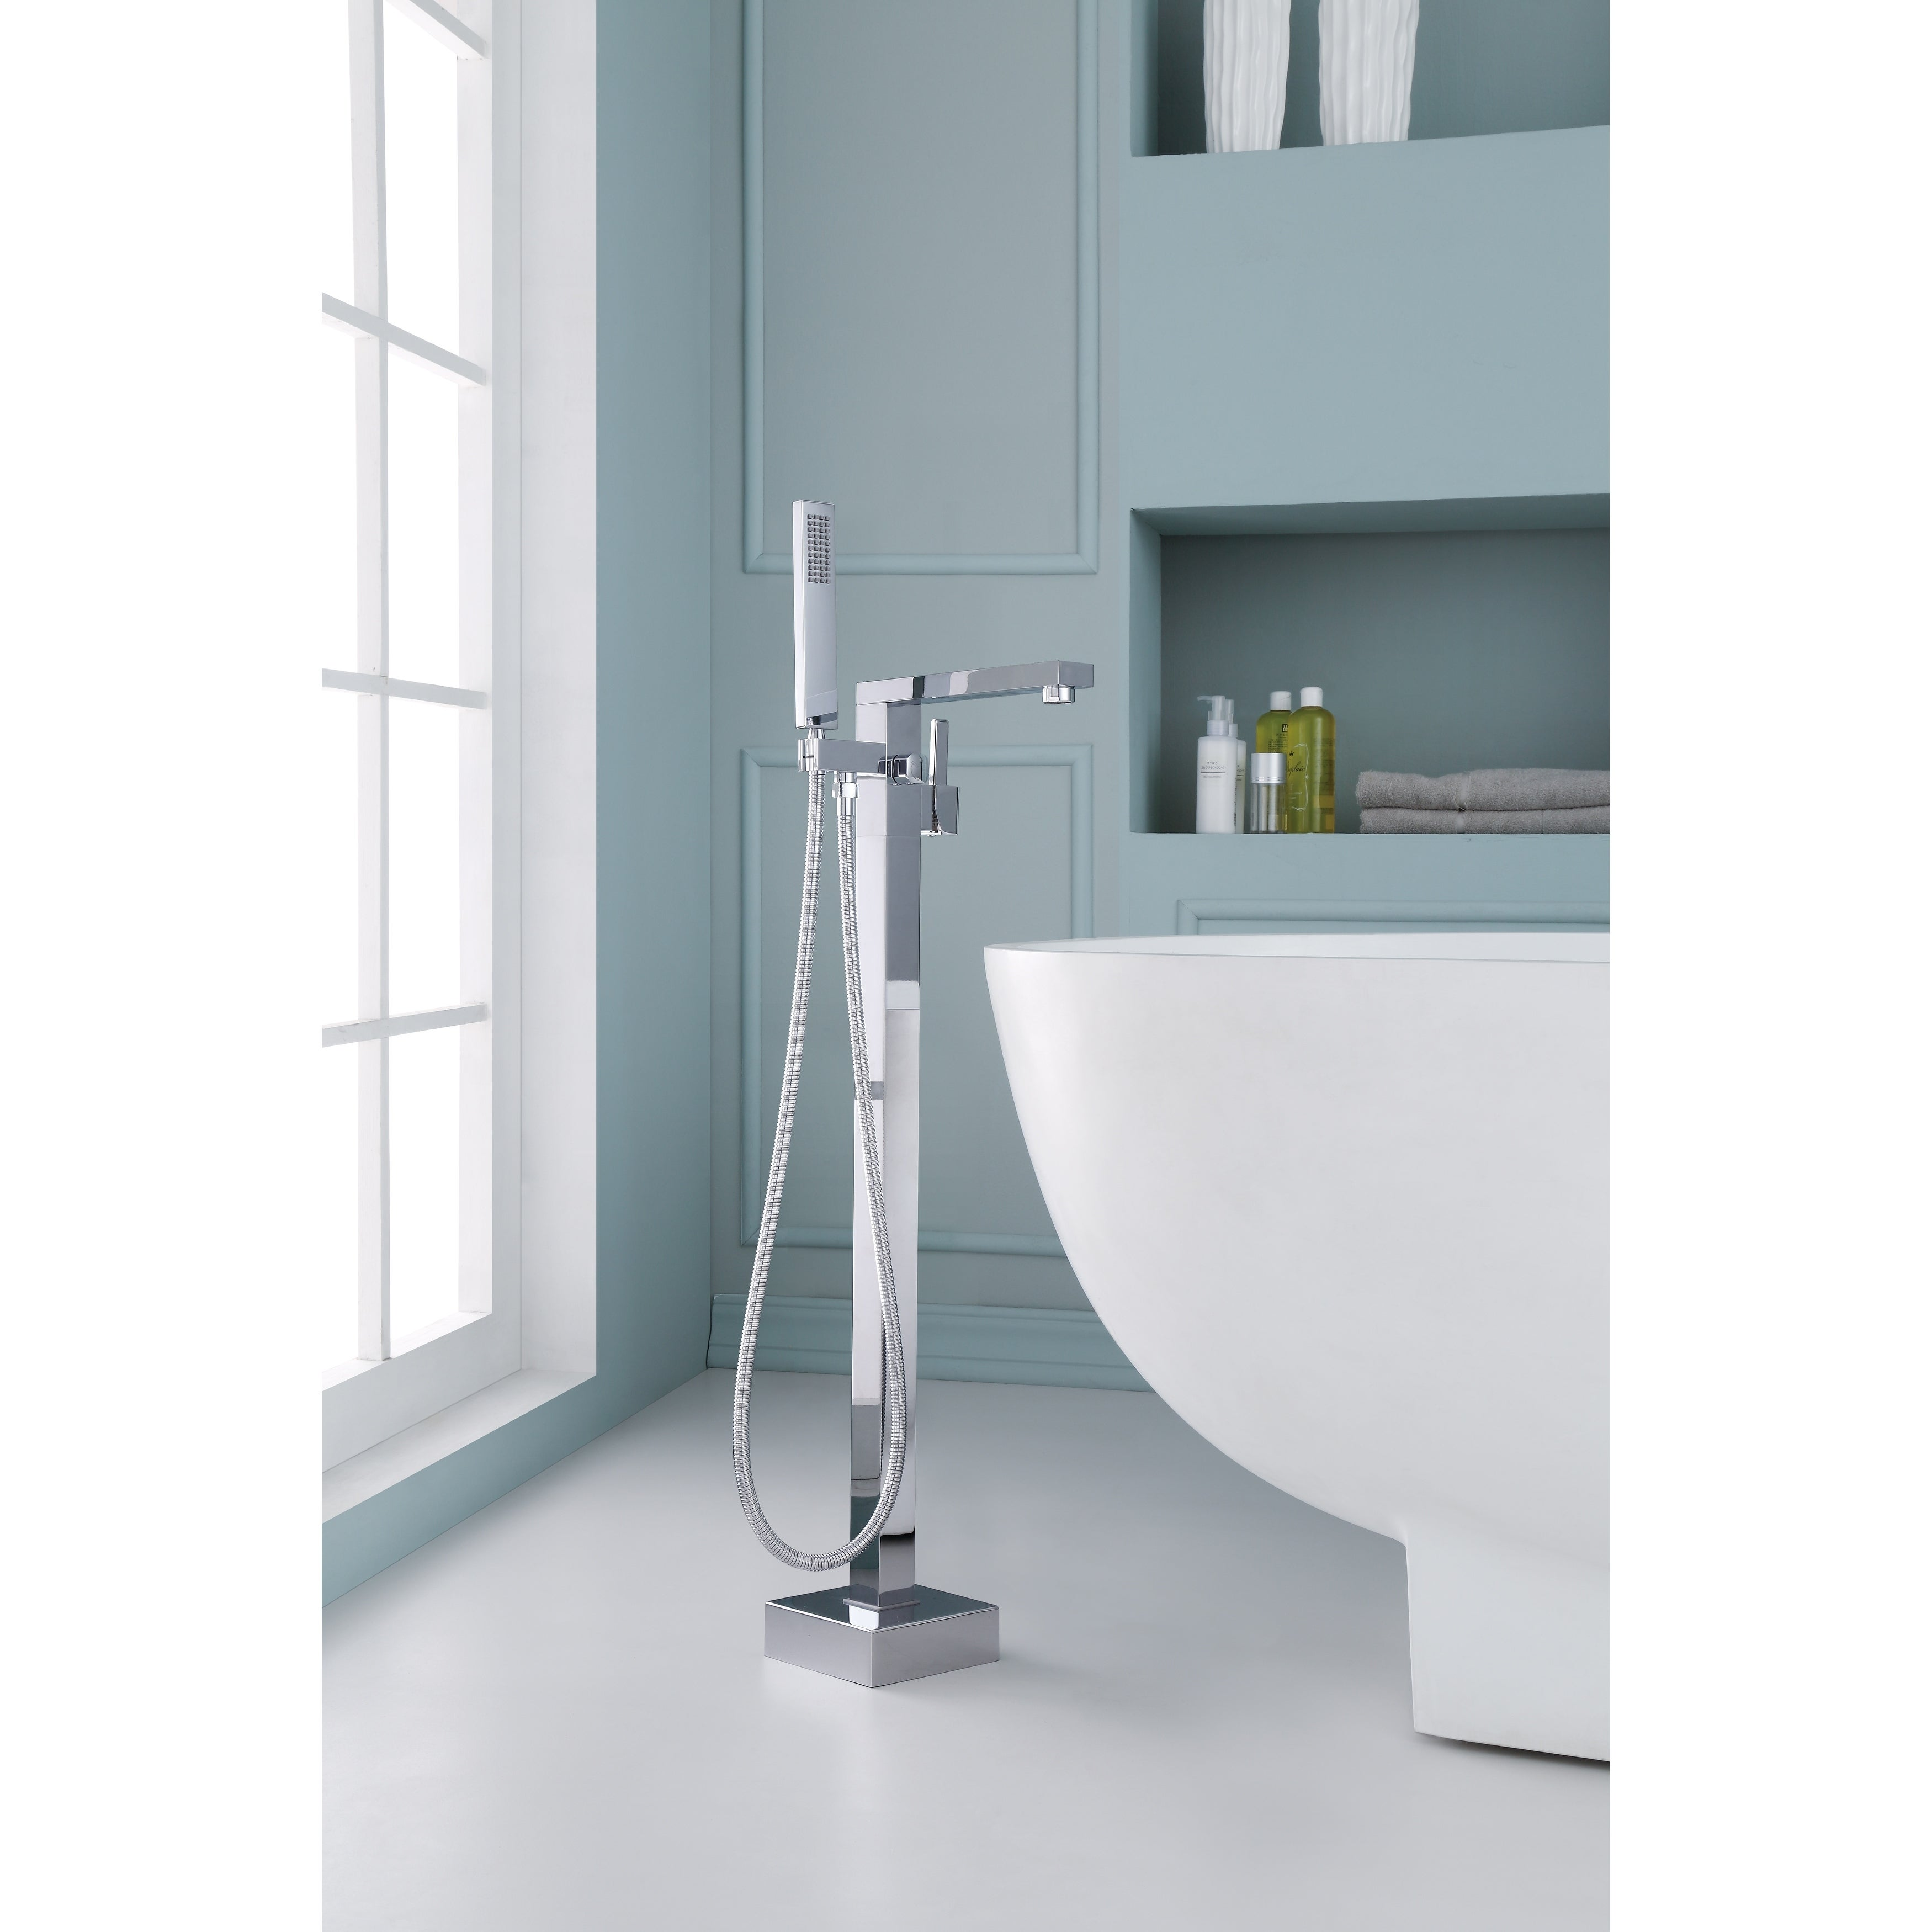 Ariel Single-Handle Freestanding Roman Tub Faucet with Hand Shower ...